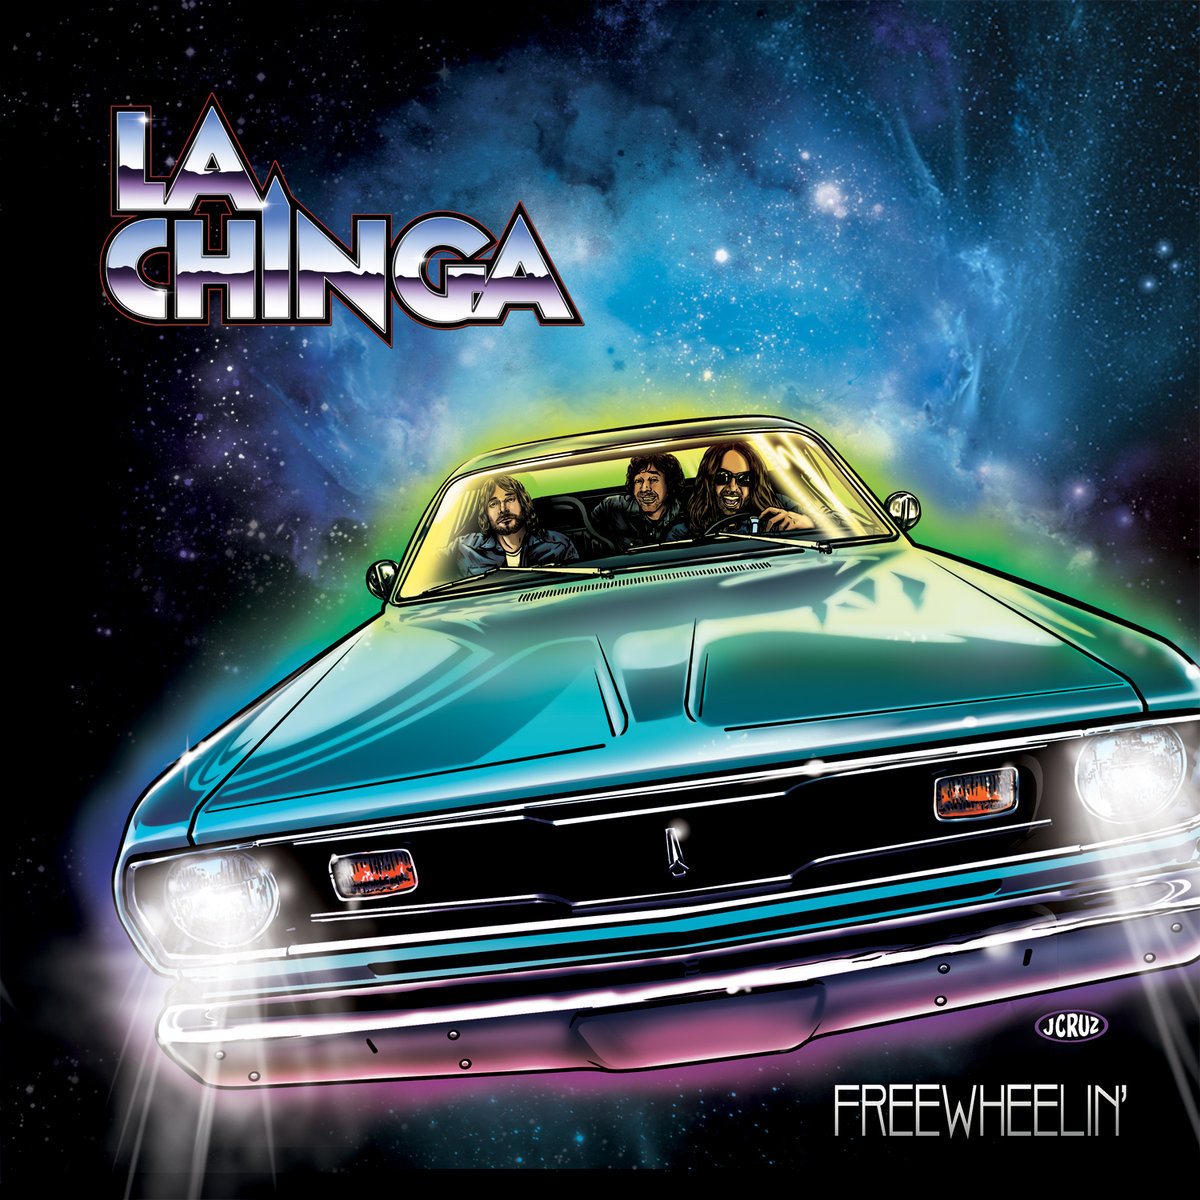 la chinga freewheelin